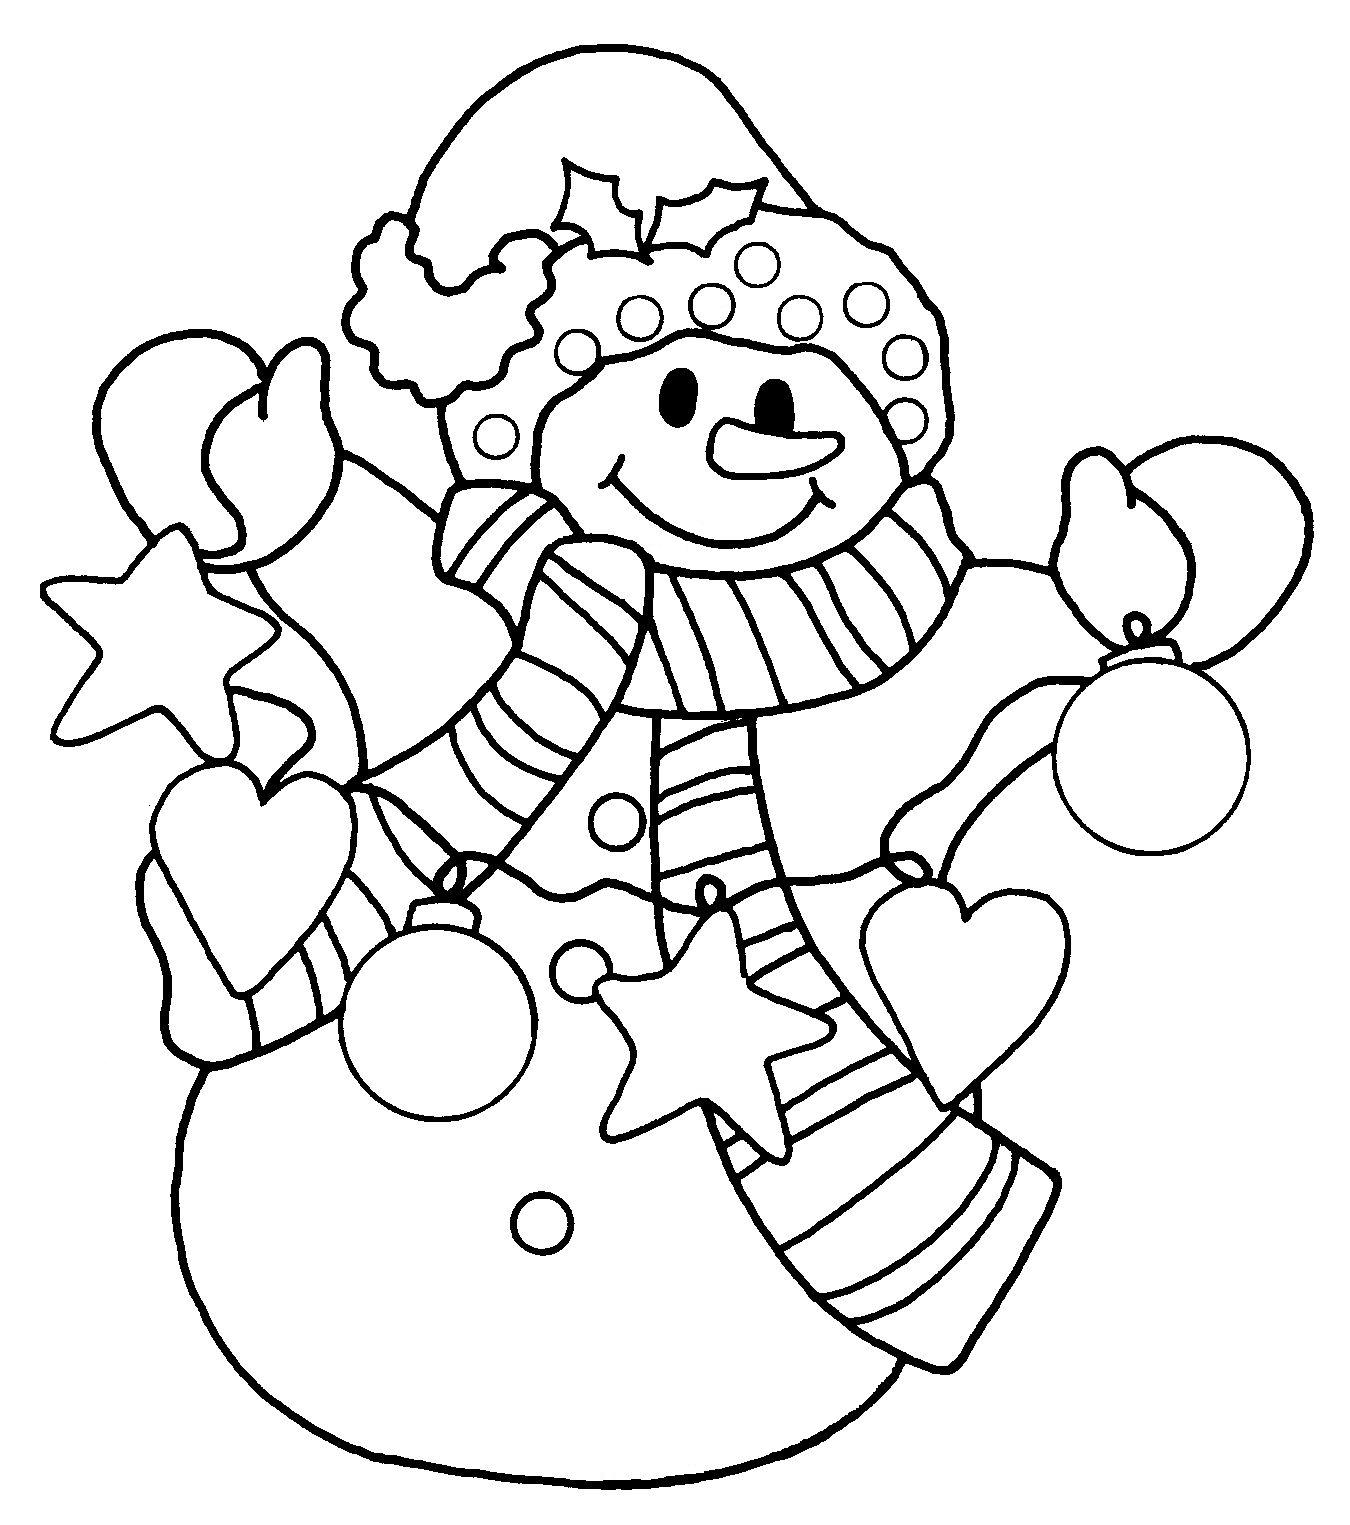 free coloring pages snowman dz doodles digital stamps oodles of doodles news freebie